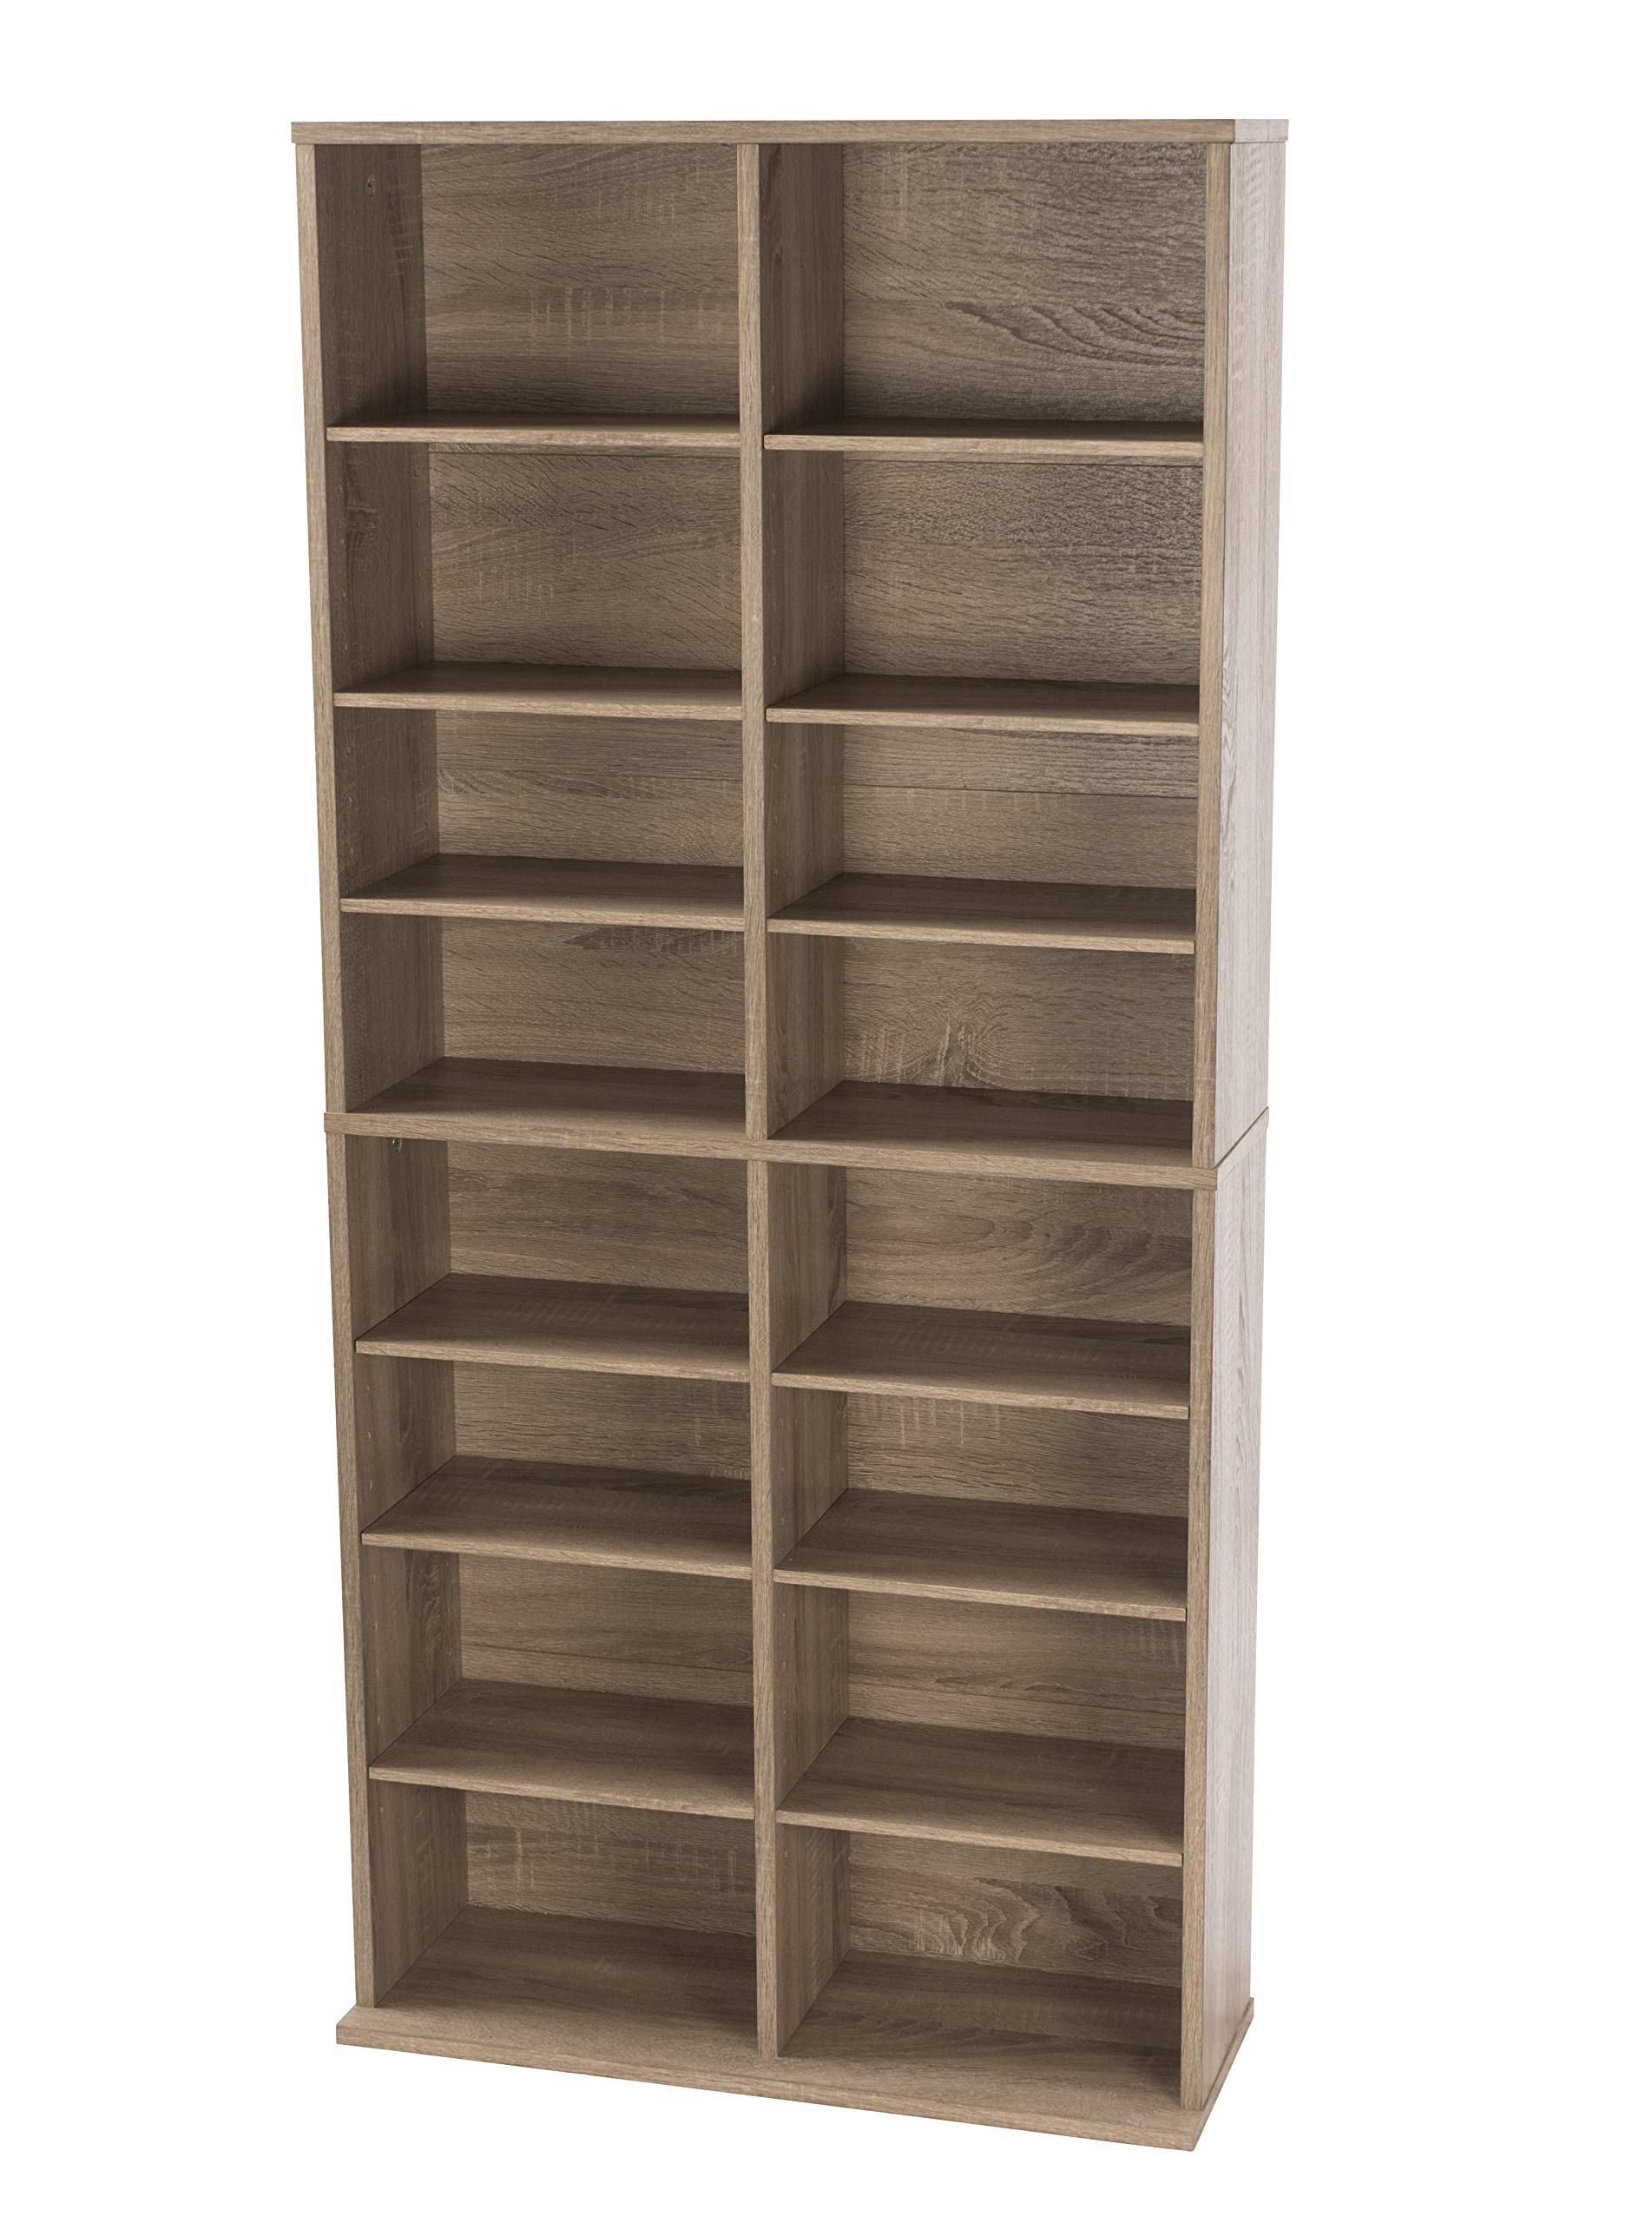 Atlantic 38436252 Henley Adjustable Media Cabinet, Weathered Oak